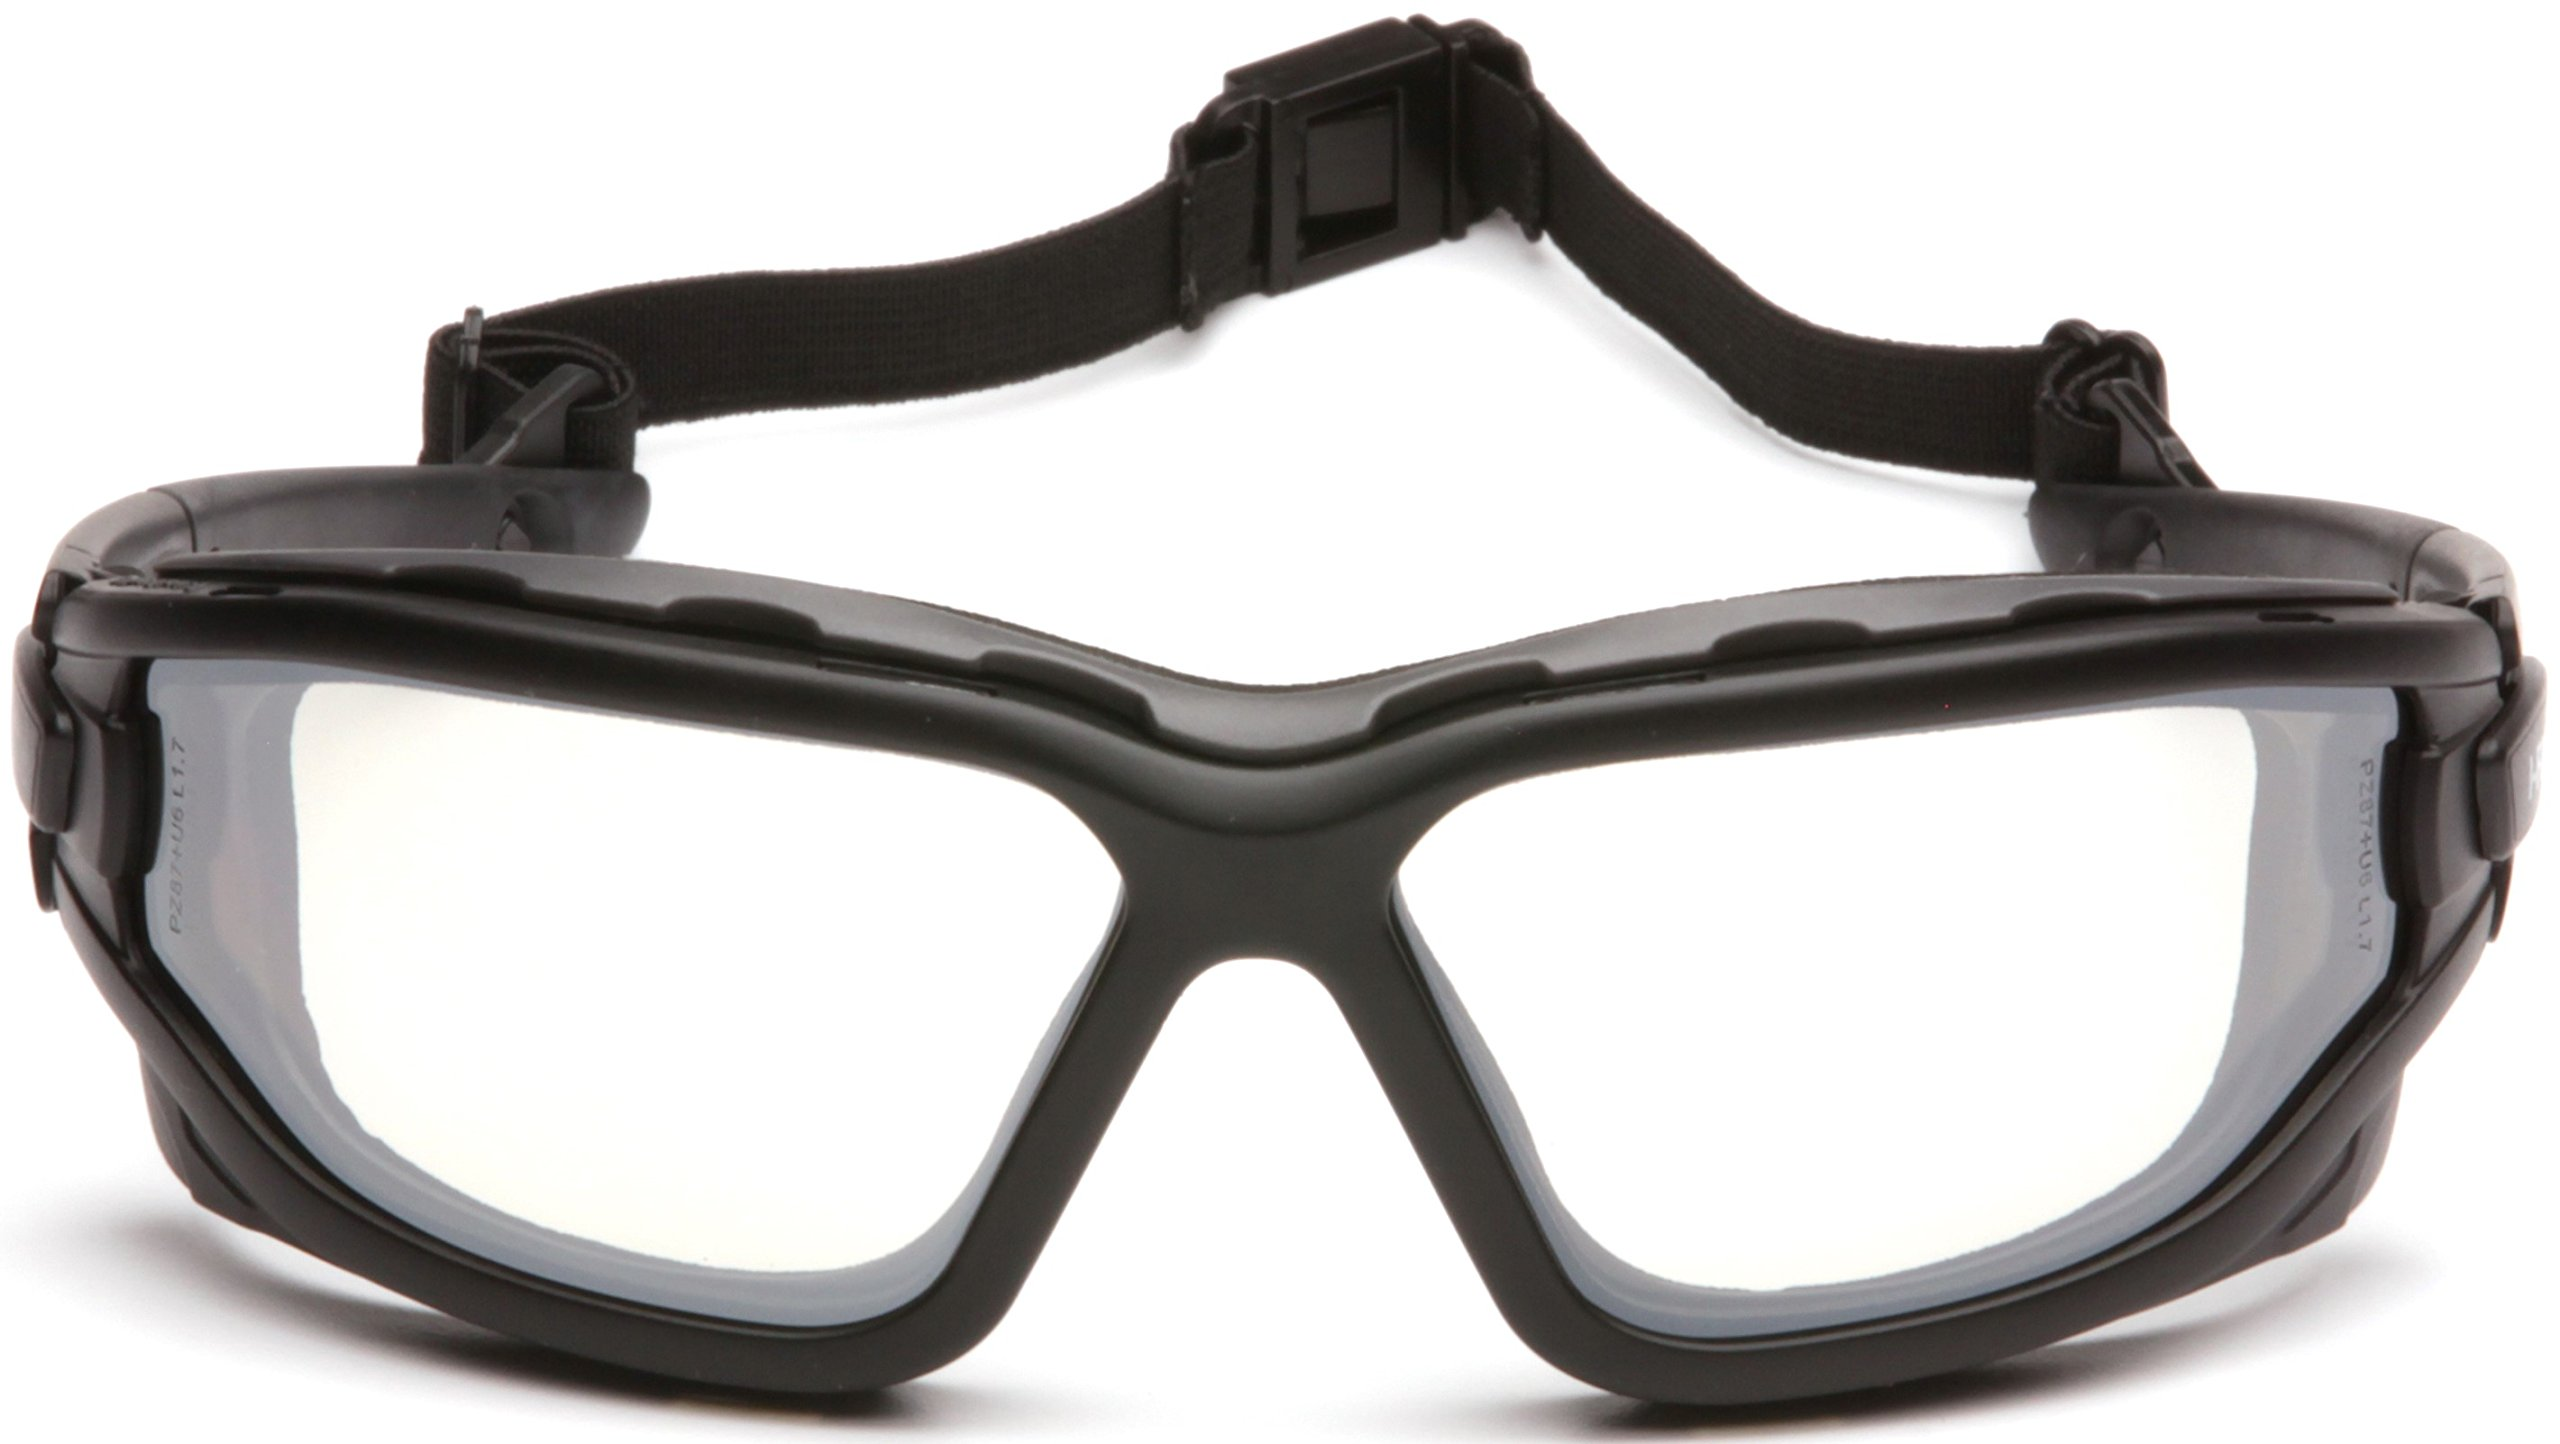 Pyramex I-Force Sporty Dual Pane Anti-Fog Goggle, Indoor/Outdoor Mirror Anti-Fog Lens by Pyramex Safety (Image #2)